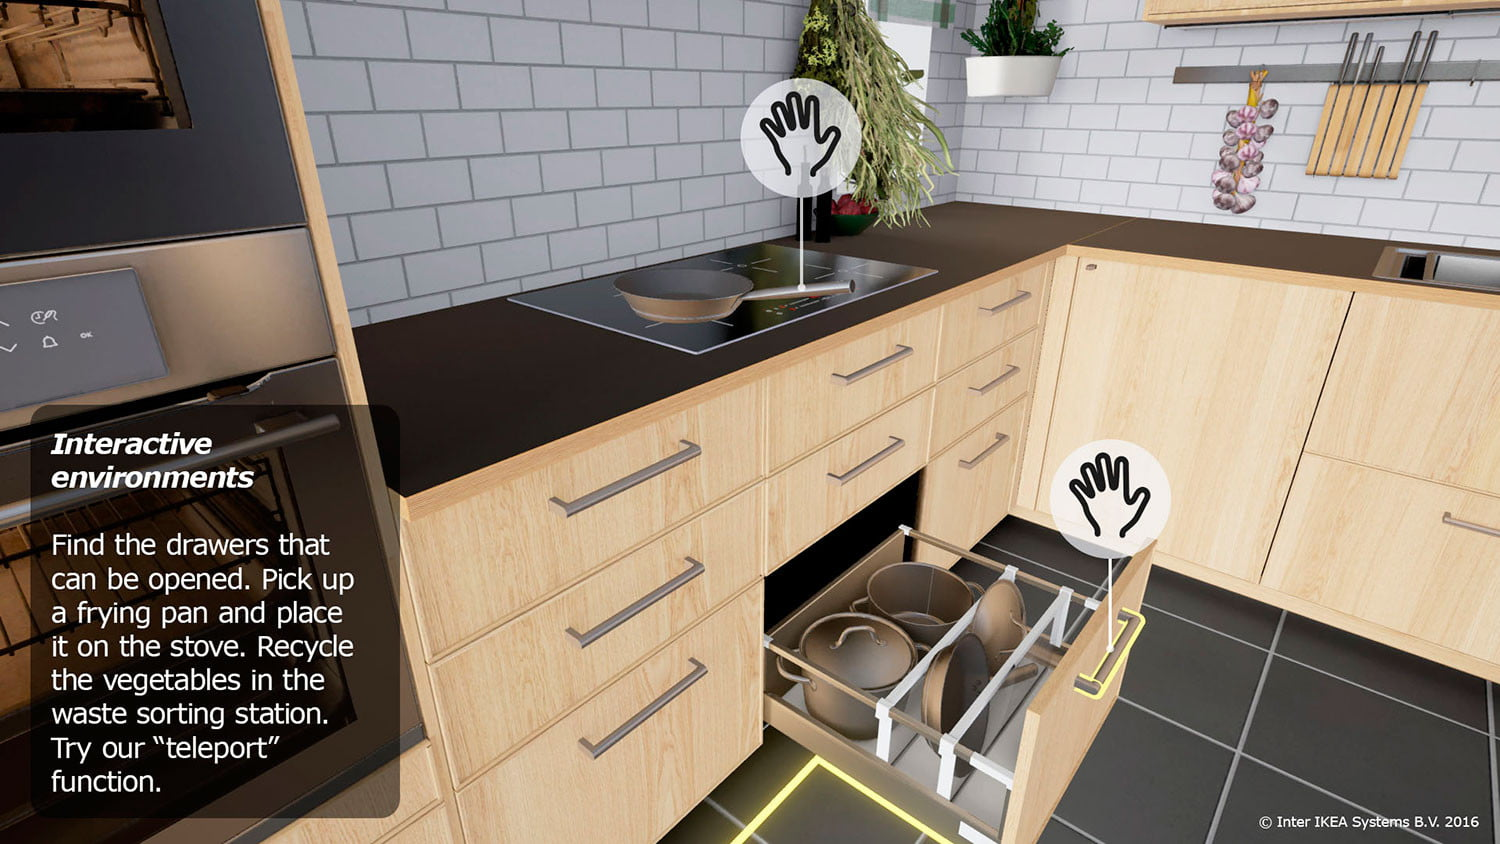 Kitchen Showrooms Ikea skip ikea's terror-inducing mobs and shop at home in a vr showroom